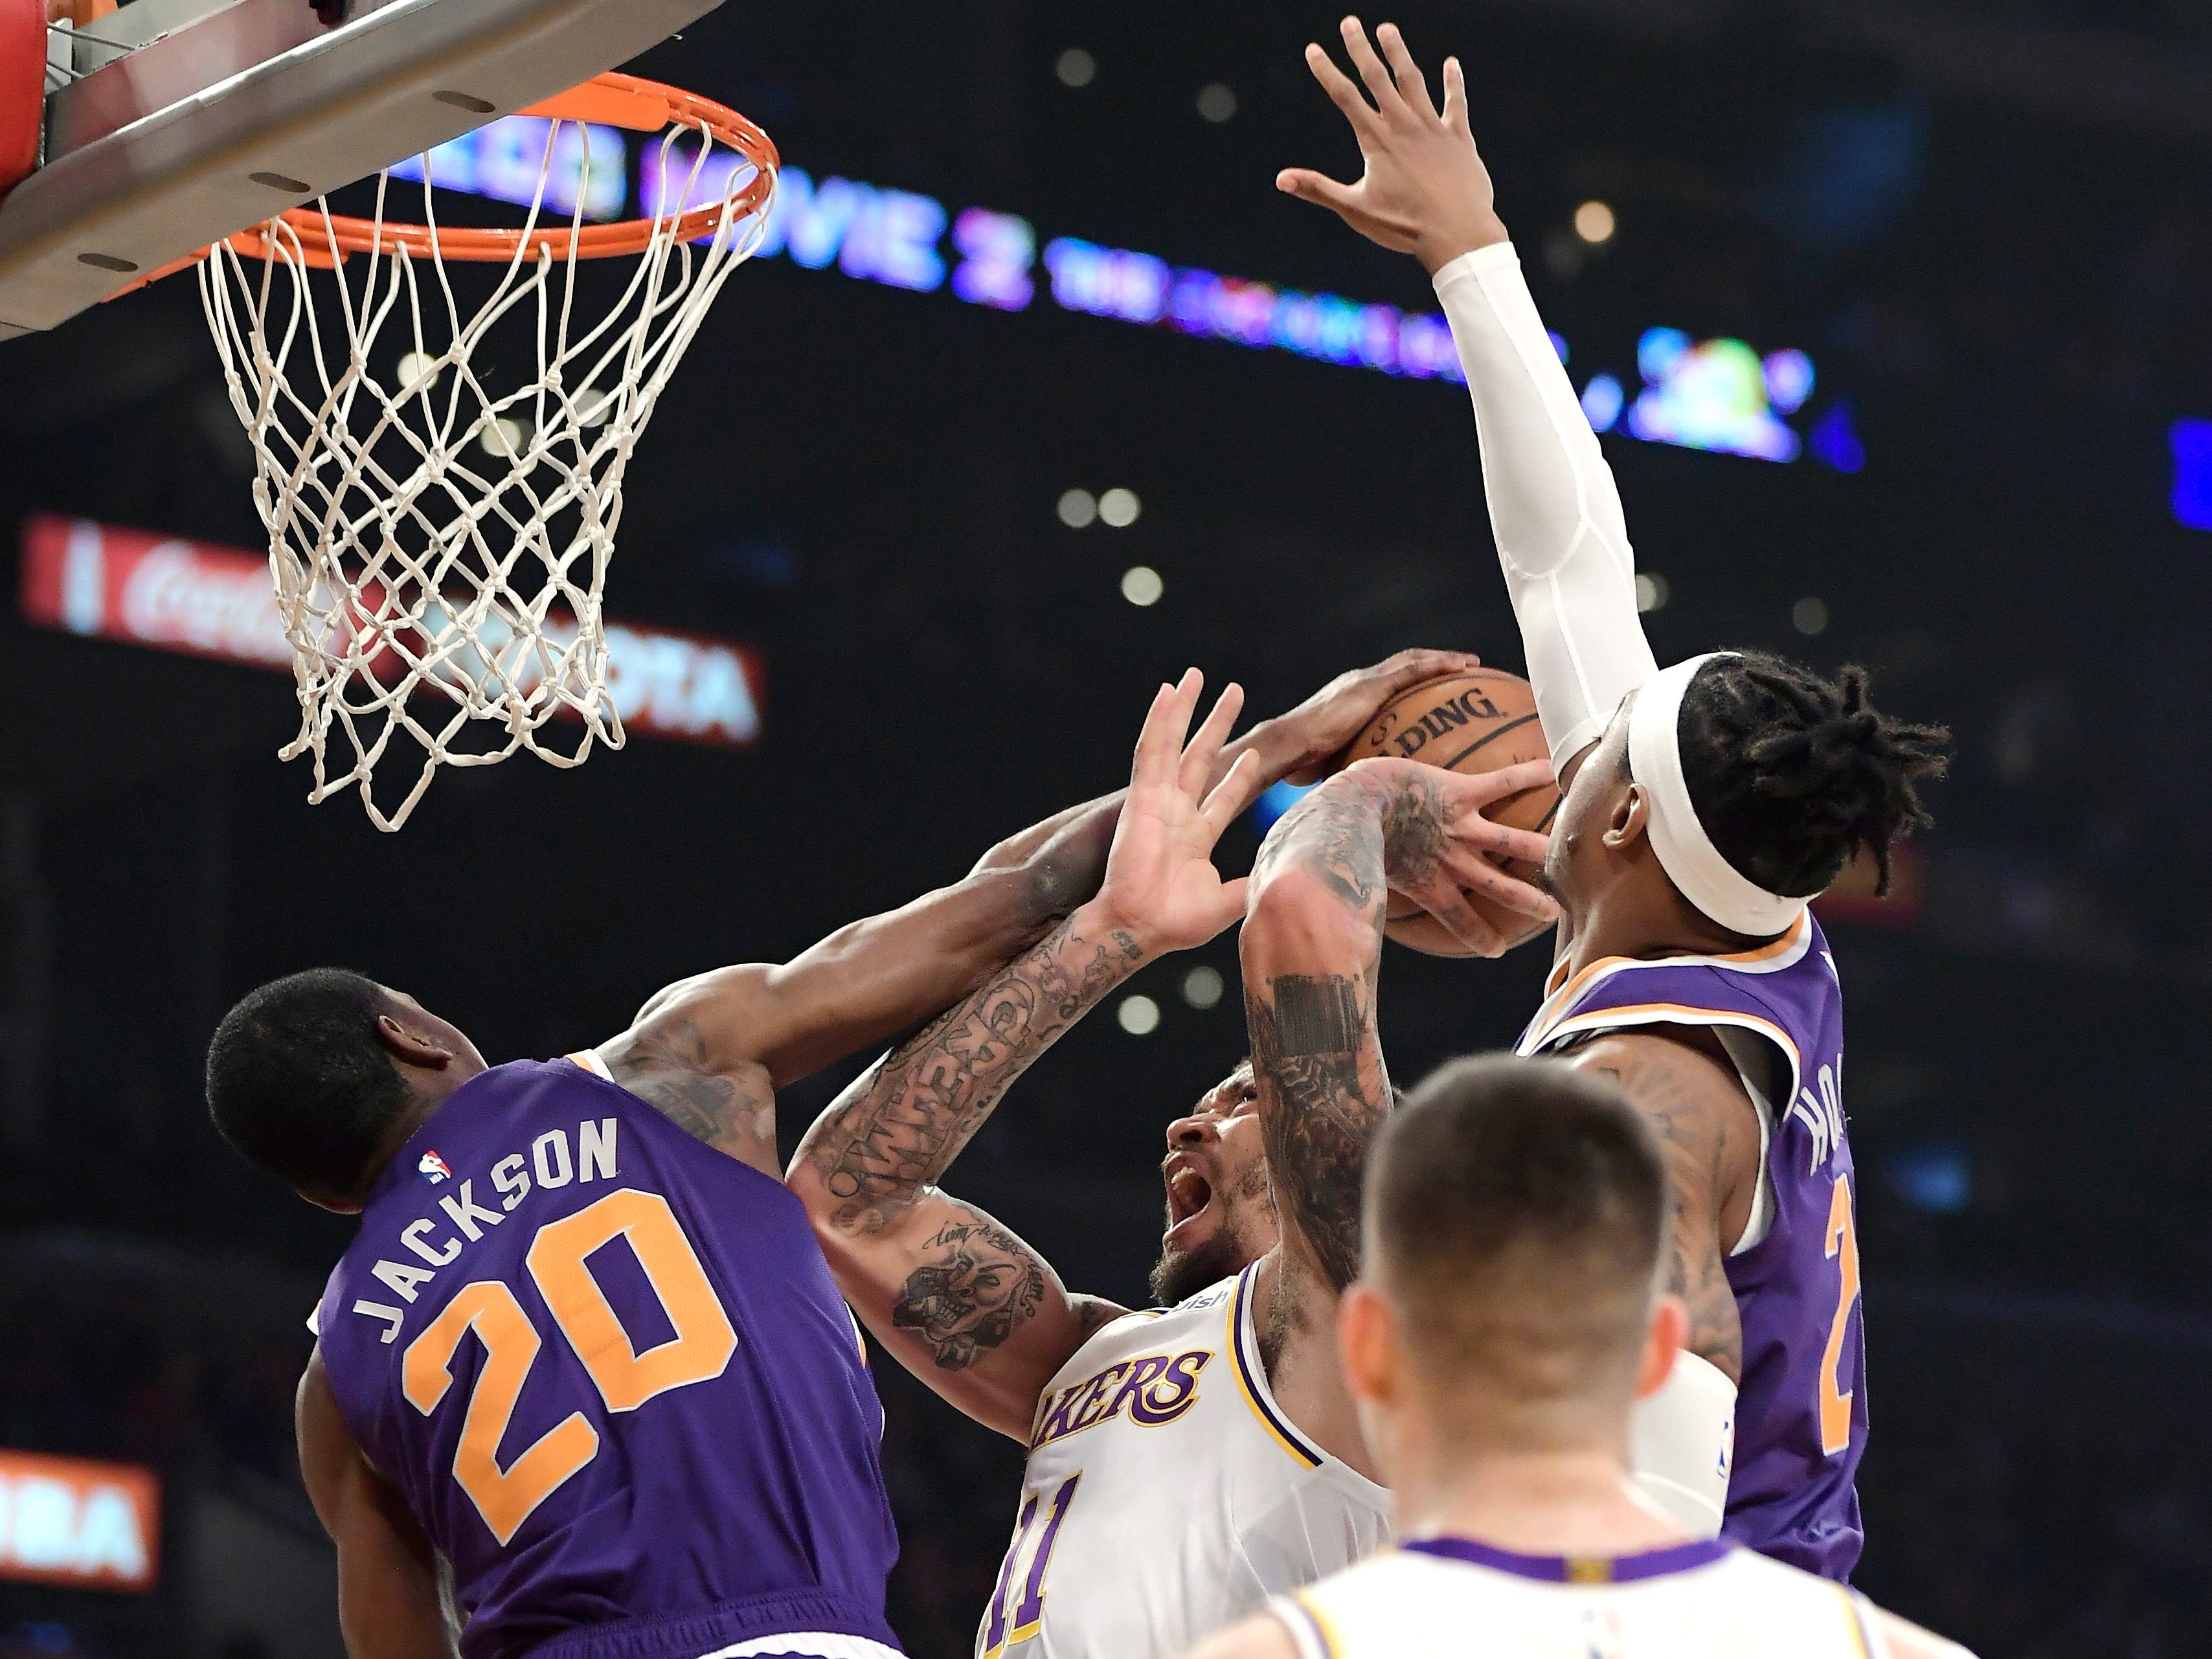 Los Angeles Lakers forward Michael Beasley, second from left, shoots as Phoenix Suns forward Josh Jackson, left, and forward Richaun Holmes, right, defend during the first half on Sunday, Jan. 27, 2019, in Los Angeles. (AP Photo/Mark J. Terrill)